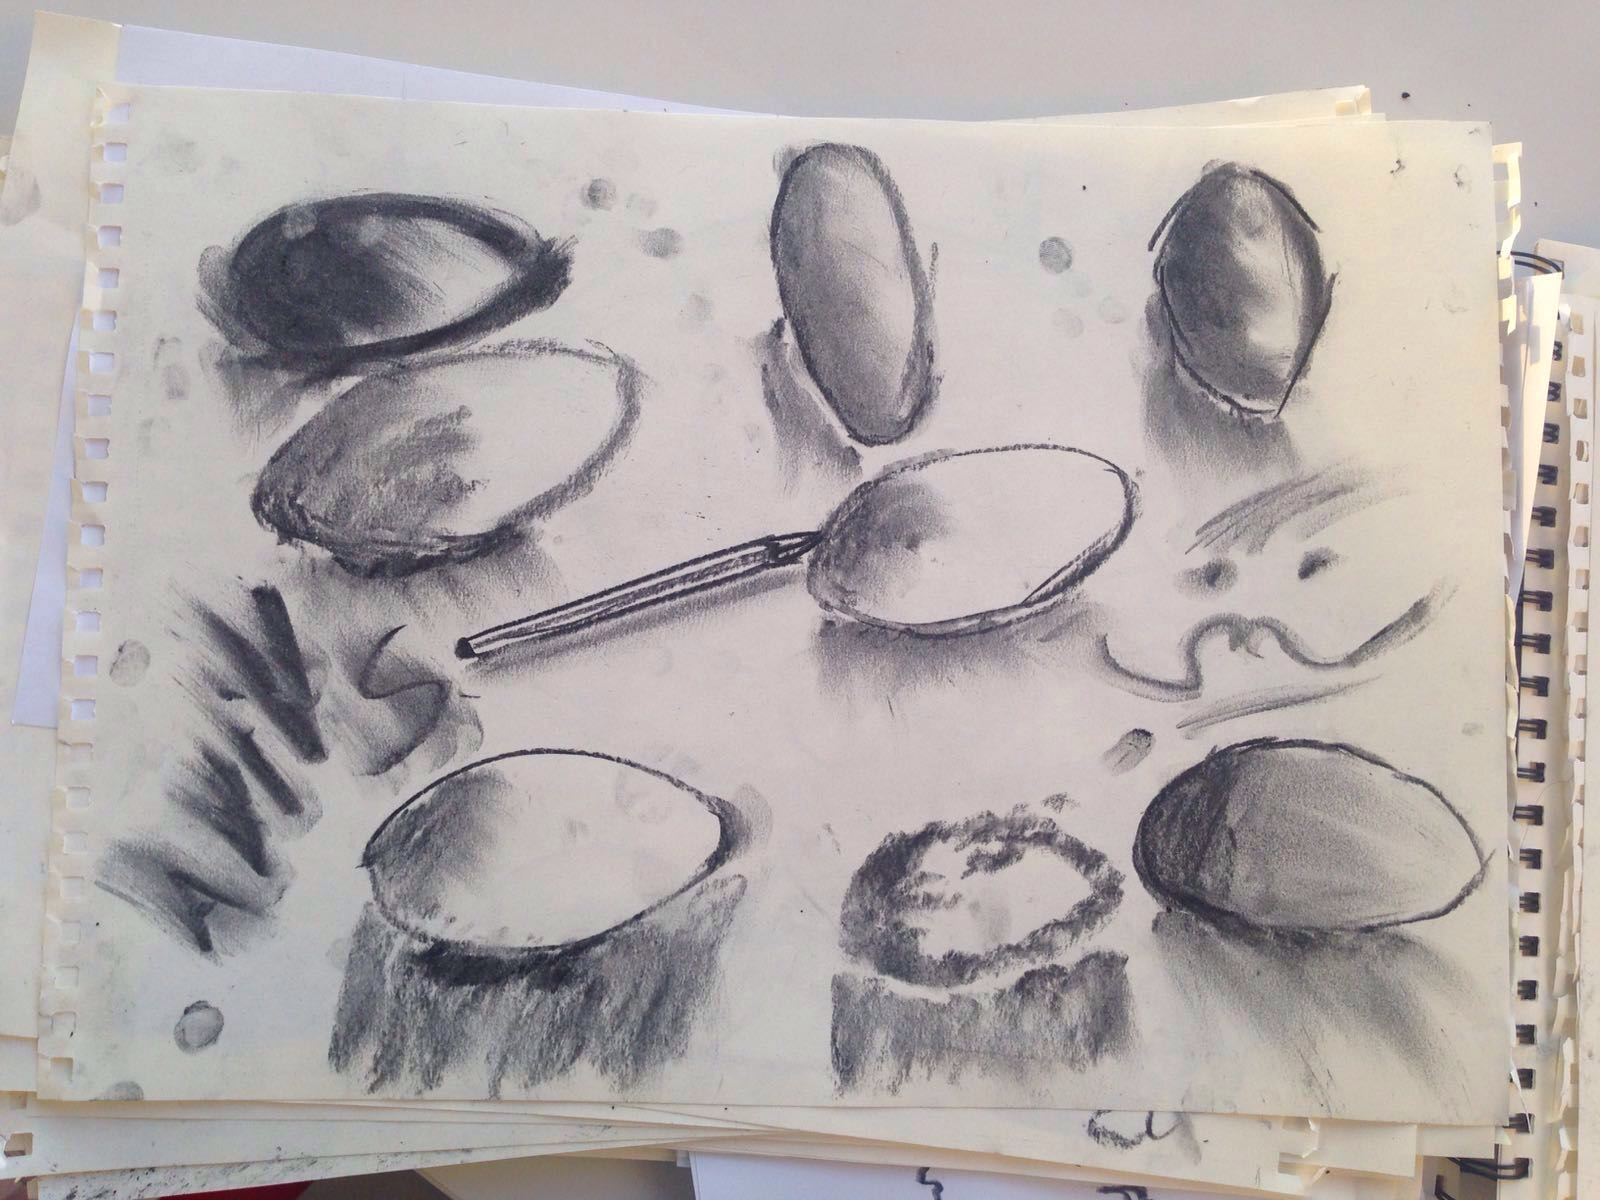 // Charcoal sketches of an egg